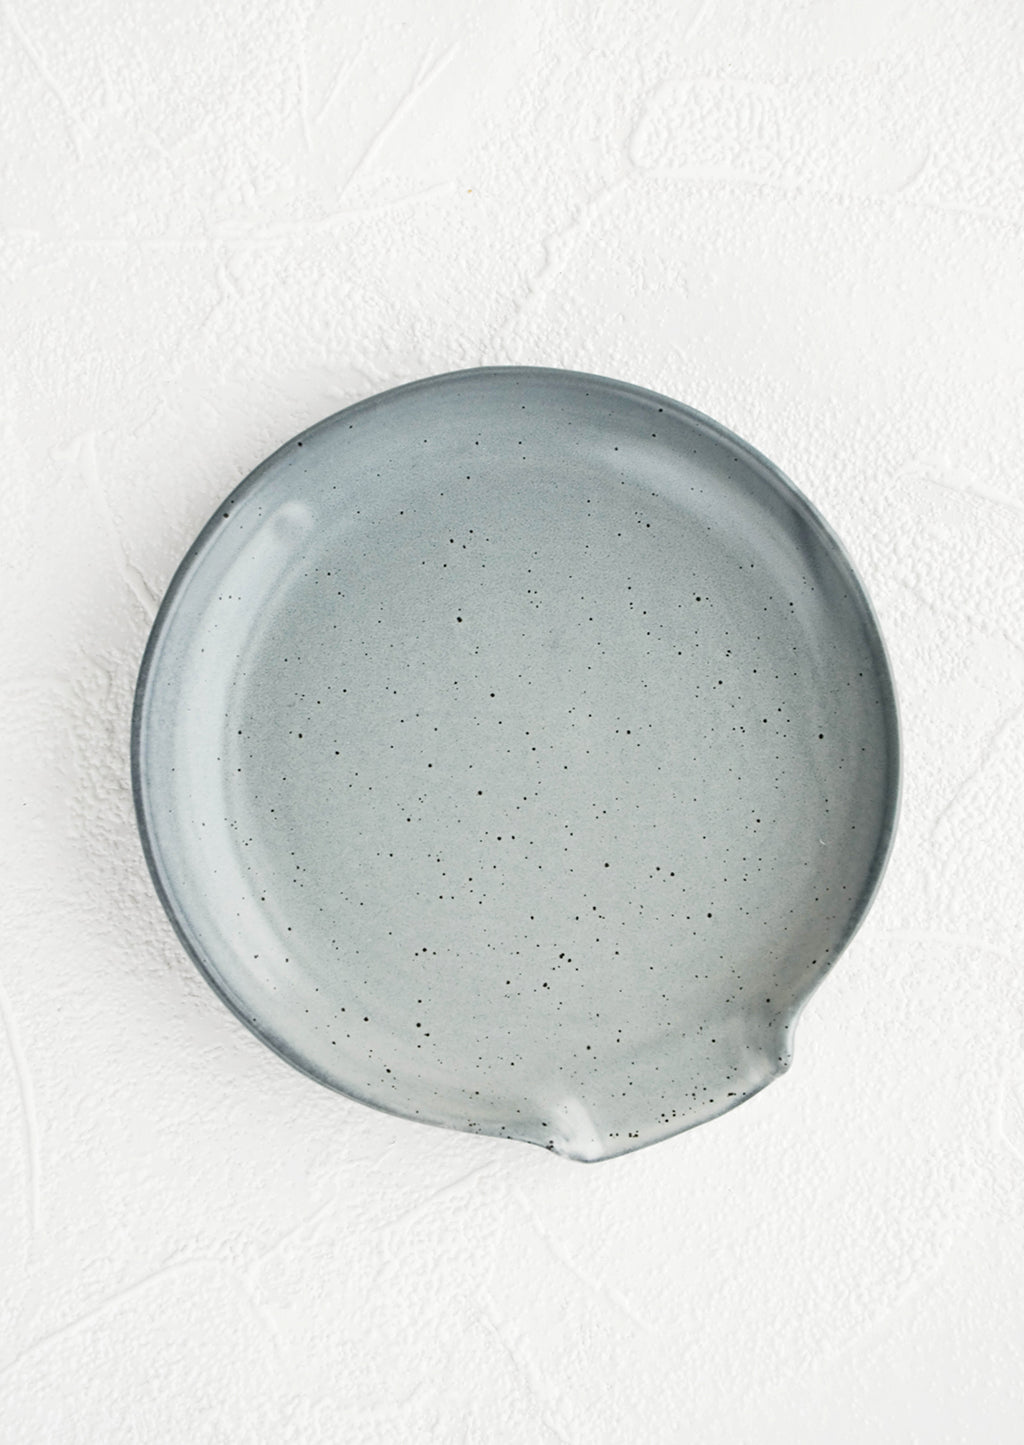 Grey: Circular ceramic spoon rest in grey with tiny black speckles